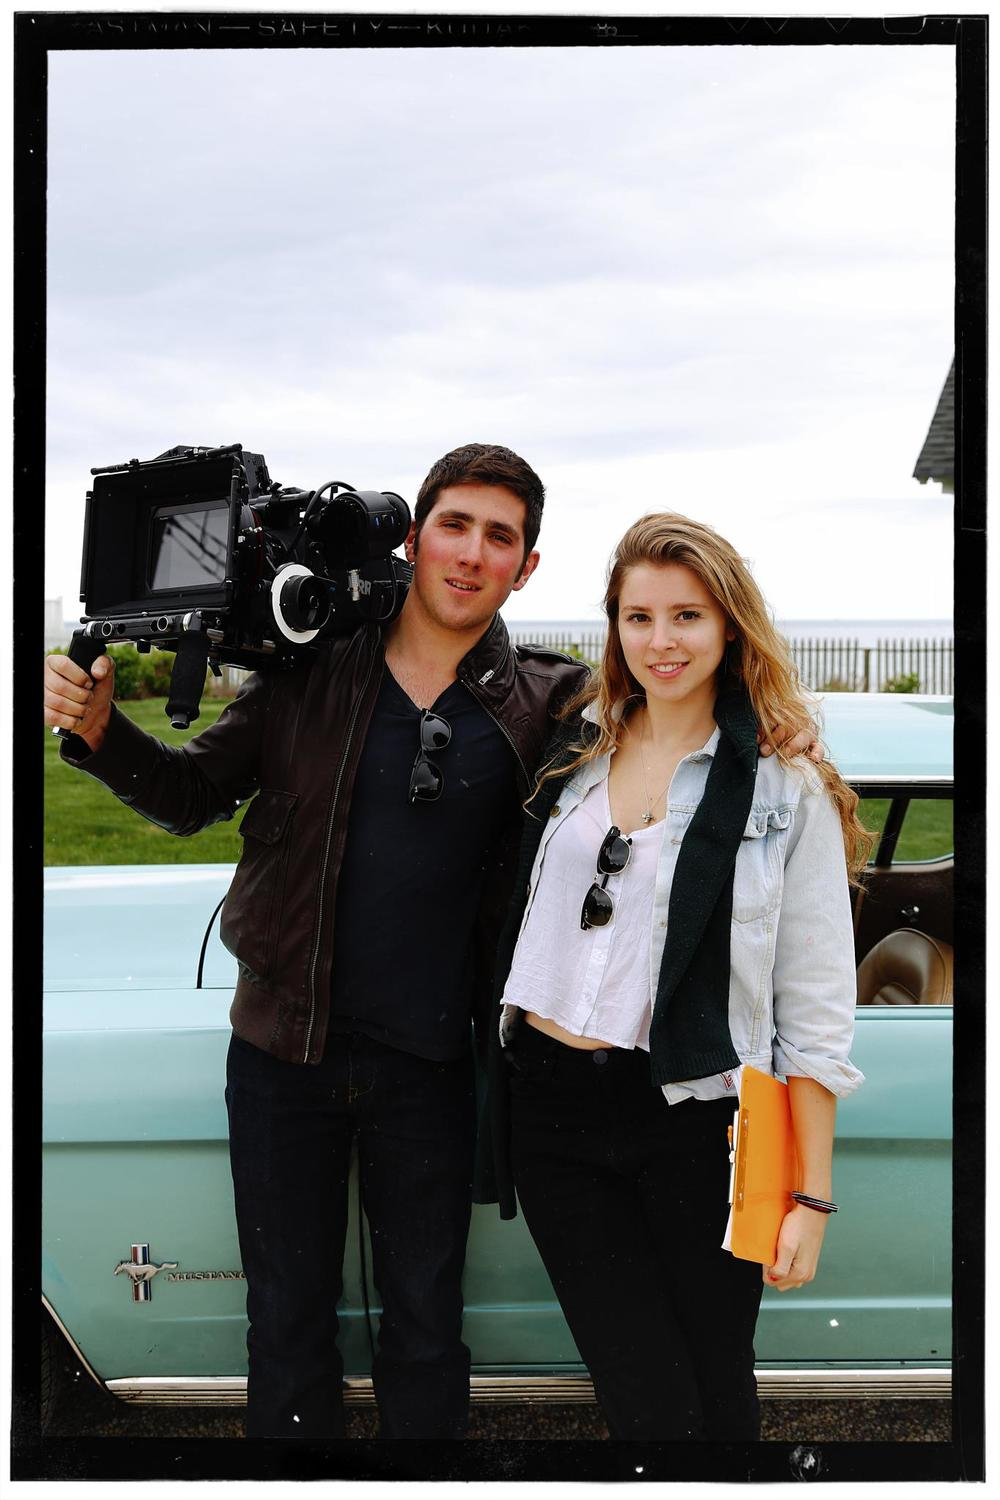 APRIL 2012. ASBURY PARK, NEW JERSEY. Hunter Baker and Eliza on set of   VIOLET.